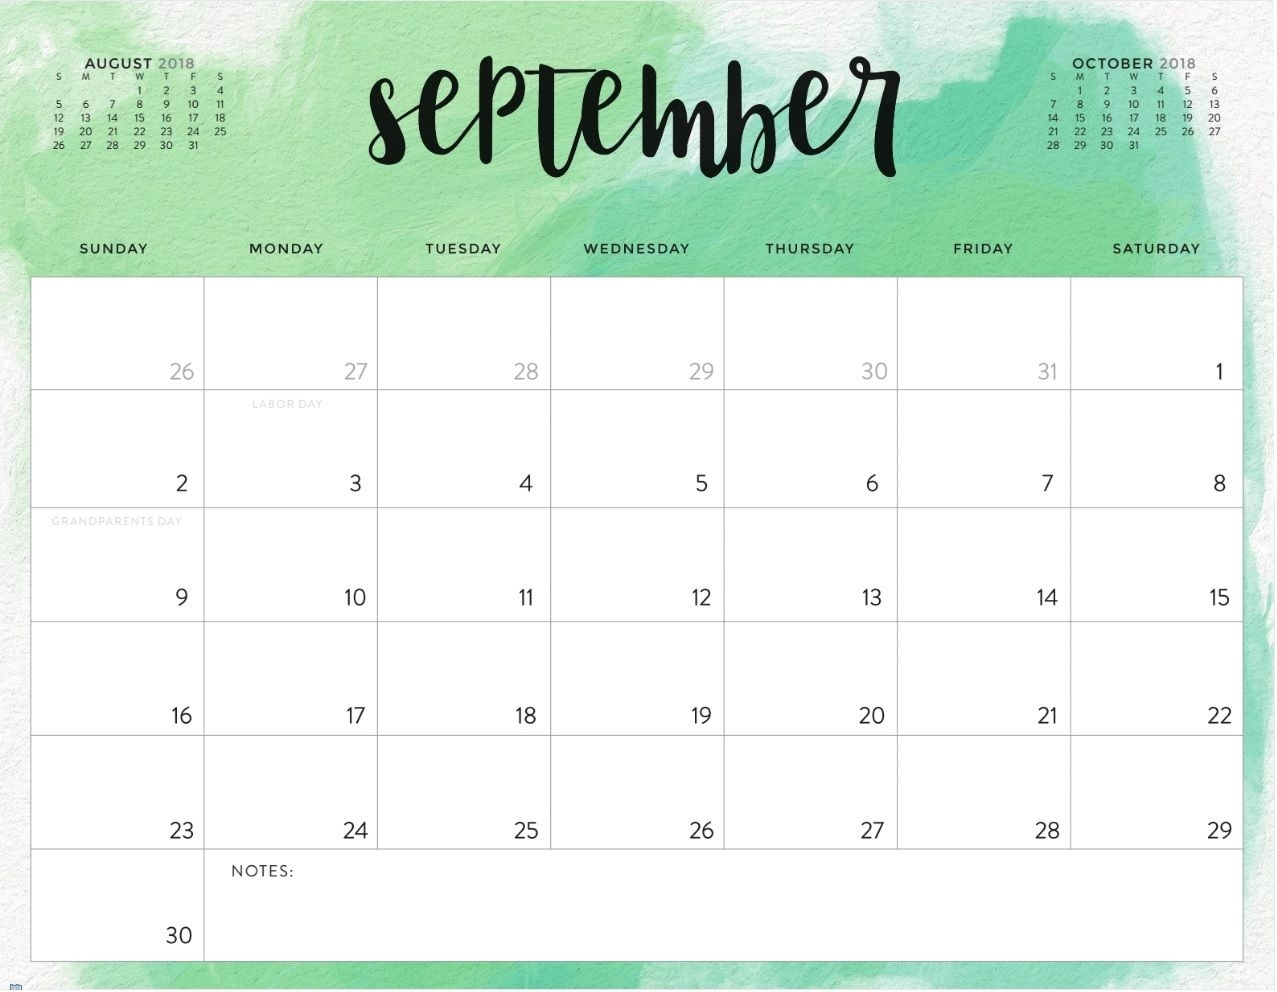 Printable Calendar 2018 Color | Printable Calendar 2019 in August Printable Images To Color